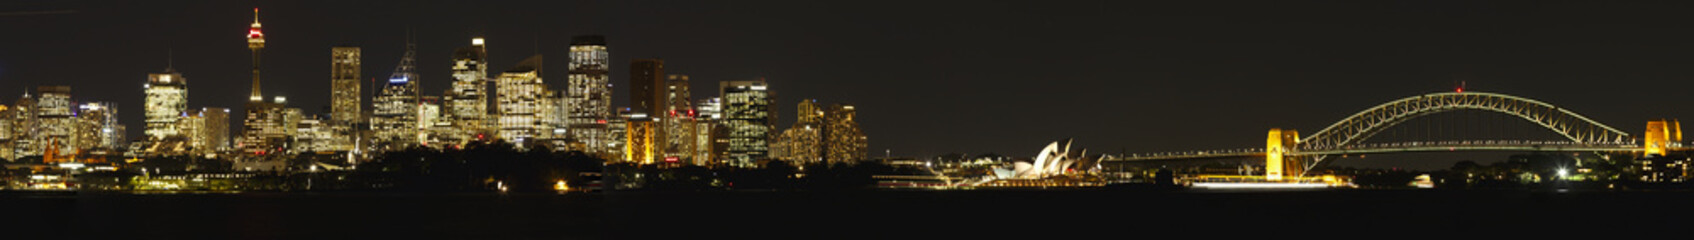 Panorama view of Sydney